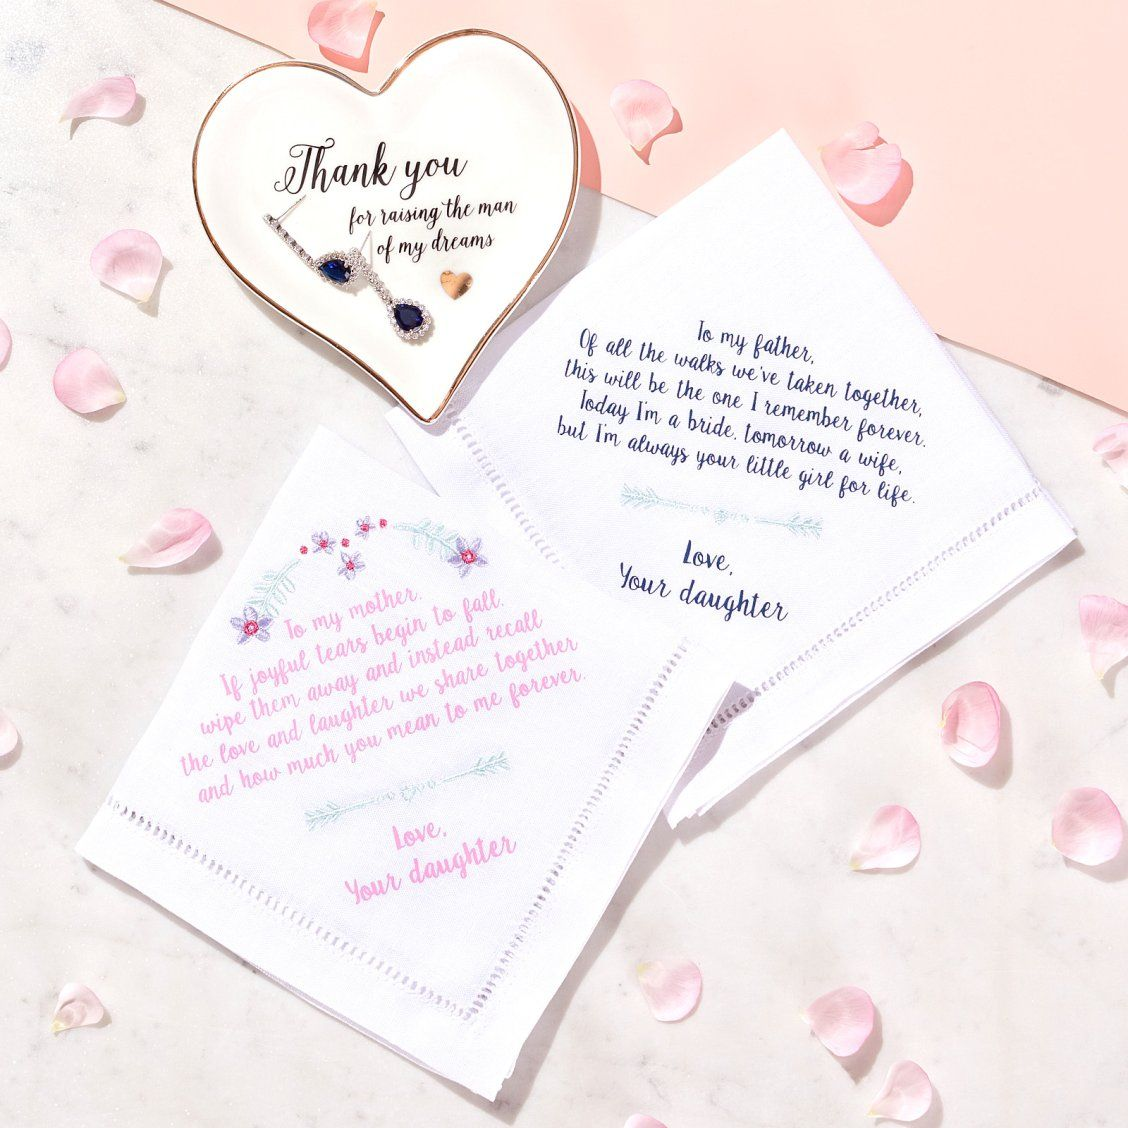 How To Thank Your Parents On Your Wedding Day Sweet Parent Gifts